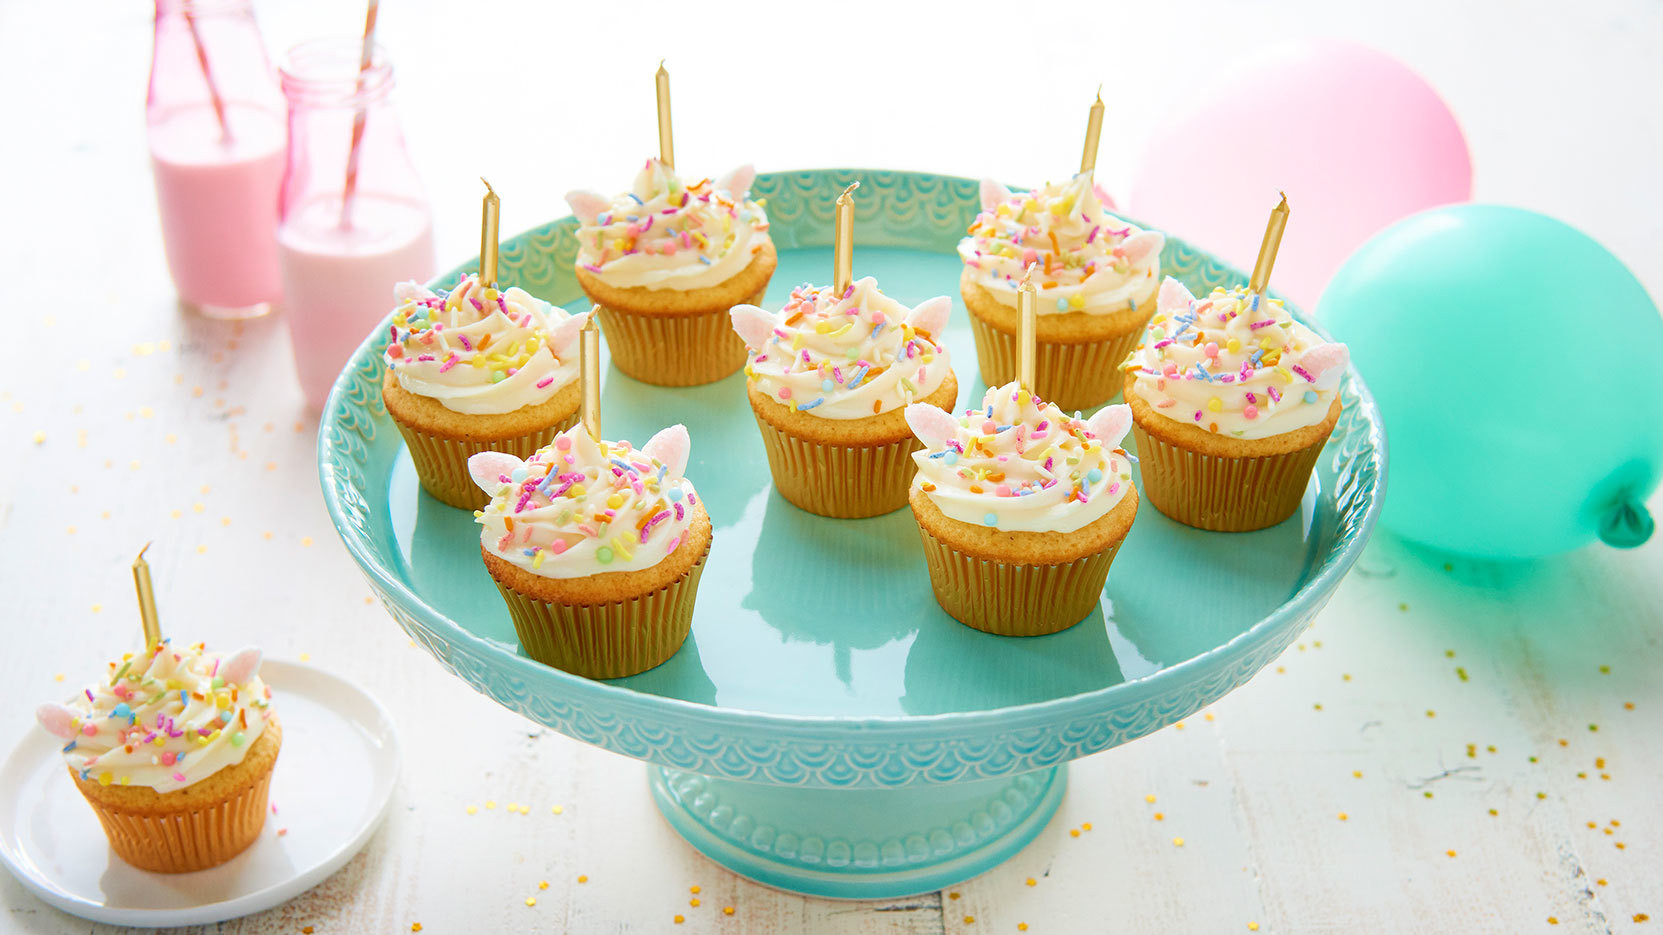 Unicorn Party Ideas Food  Magical Unicorn Birthday Party Ideas for Kids EatingWell